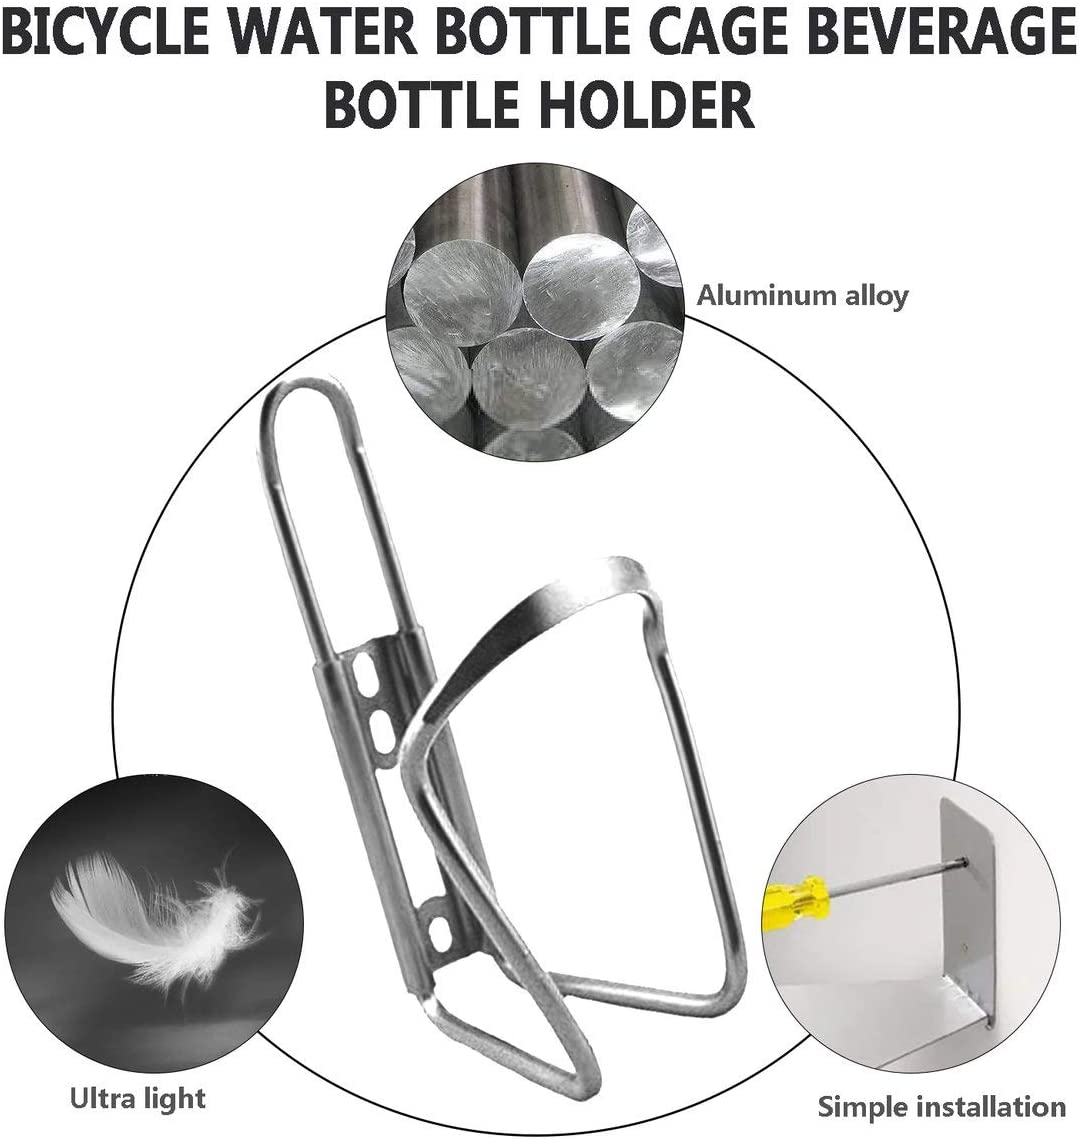 YXGS Ultra Lightweight Aluminum Alloy Bicycle Water Bottle Holder Cage MTB Road Bike Drink Bottles Mount Rack Cycling Accessories